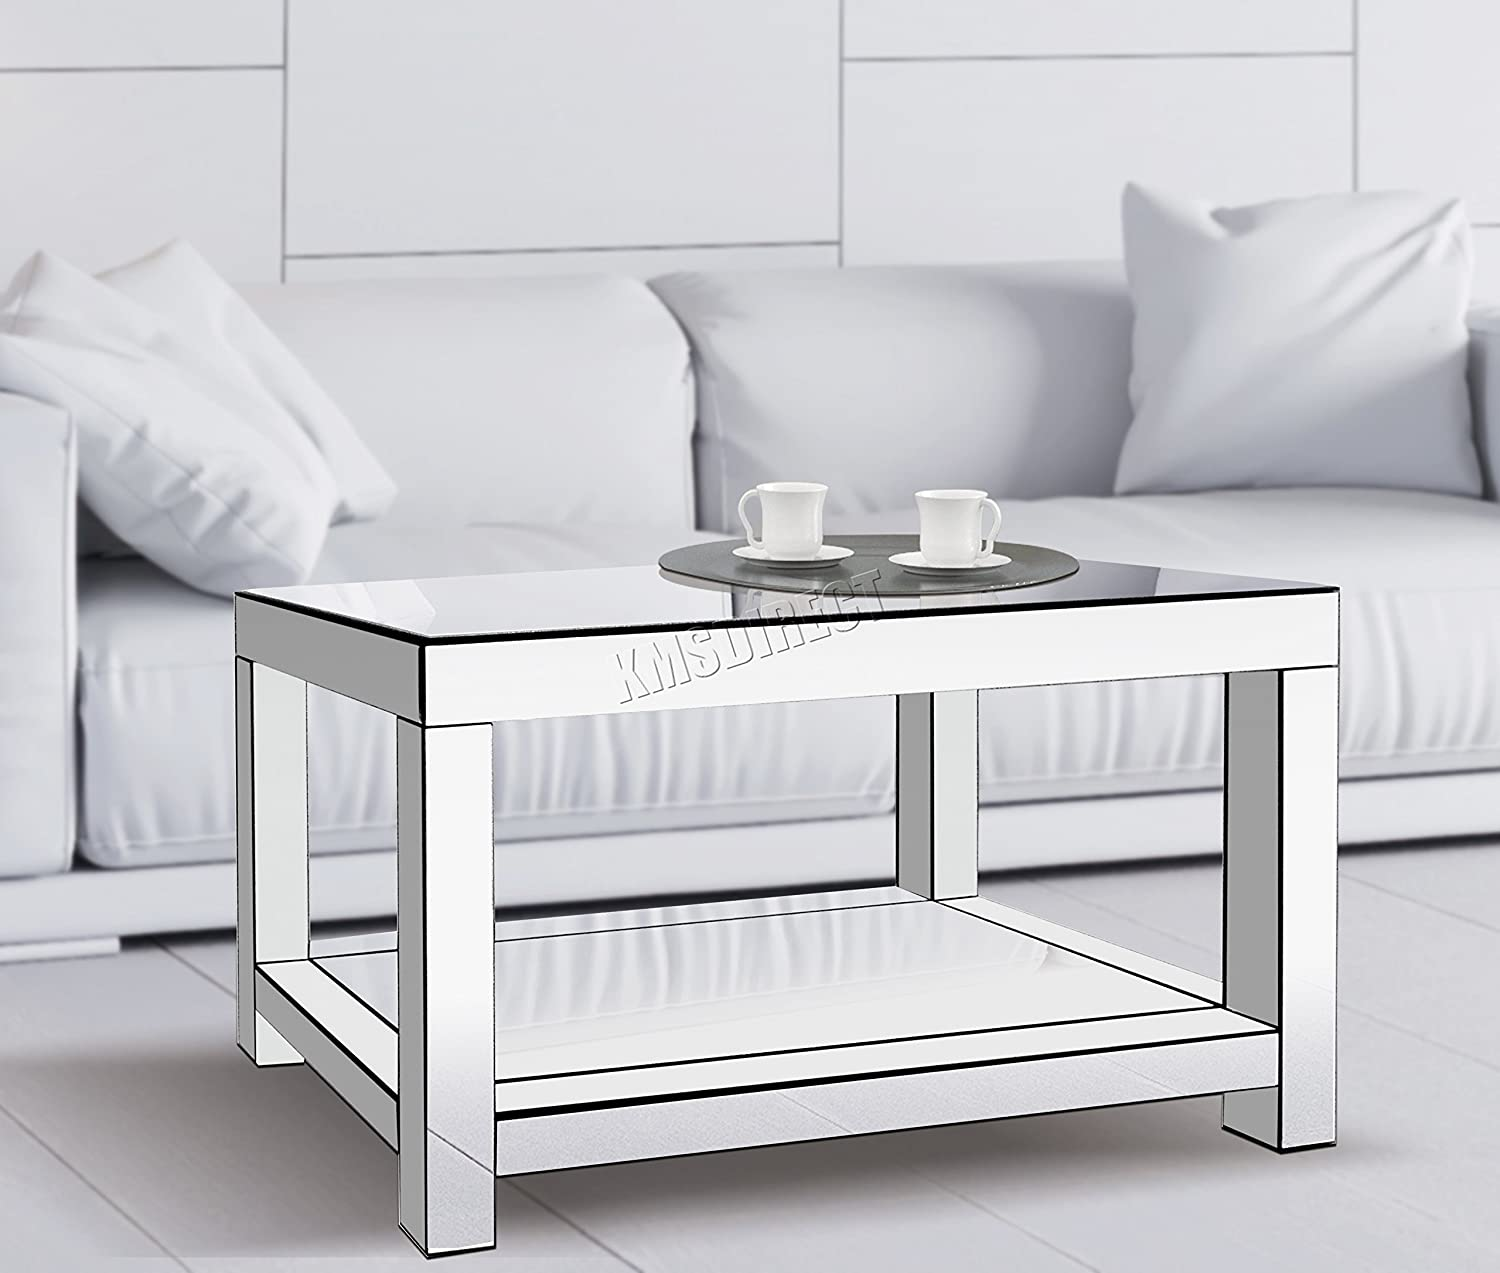 Foxhunter modern mirrored furniture glass coffee table 2 tier desk living room home mt07 silver new amazon co uk kitchen home